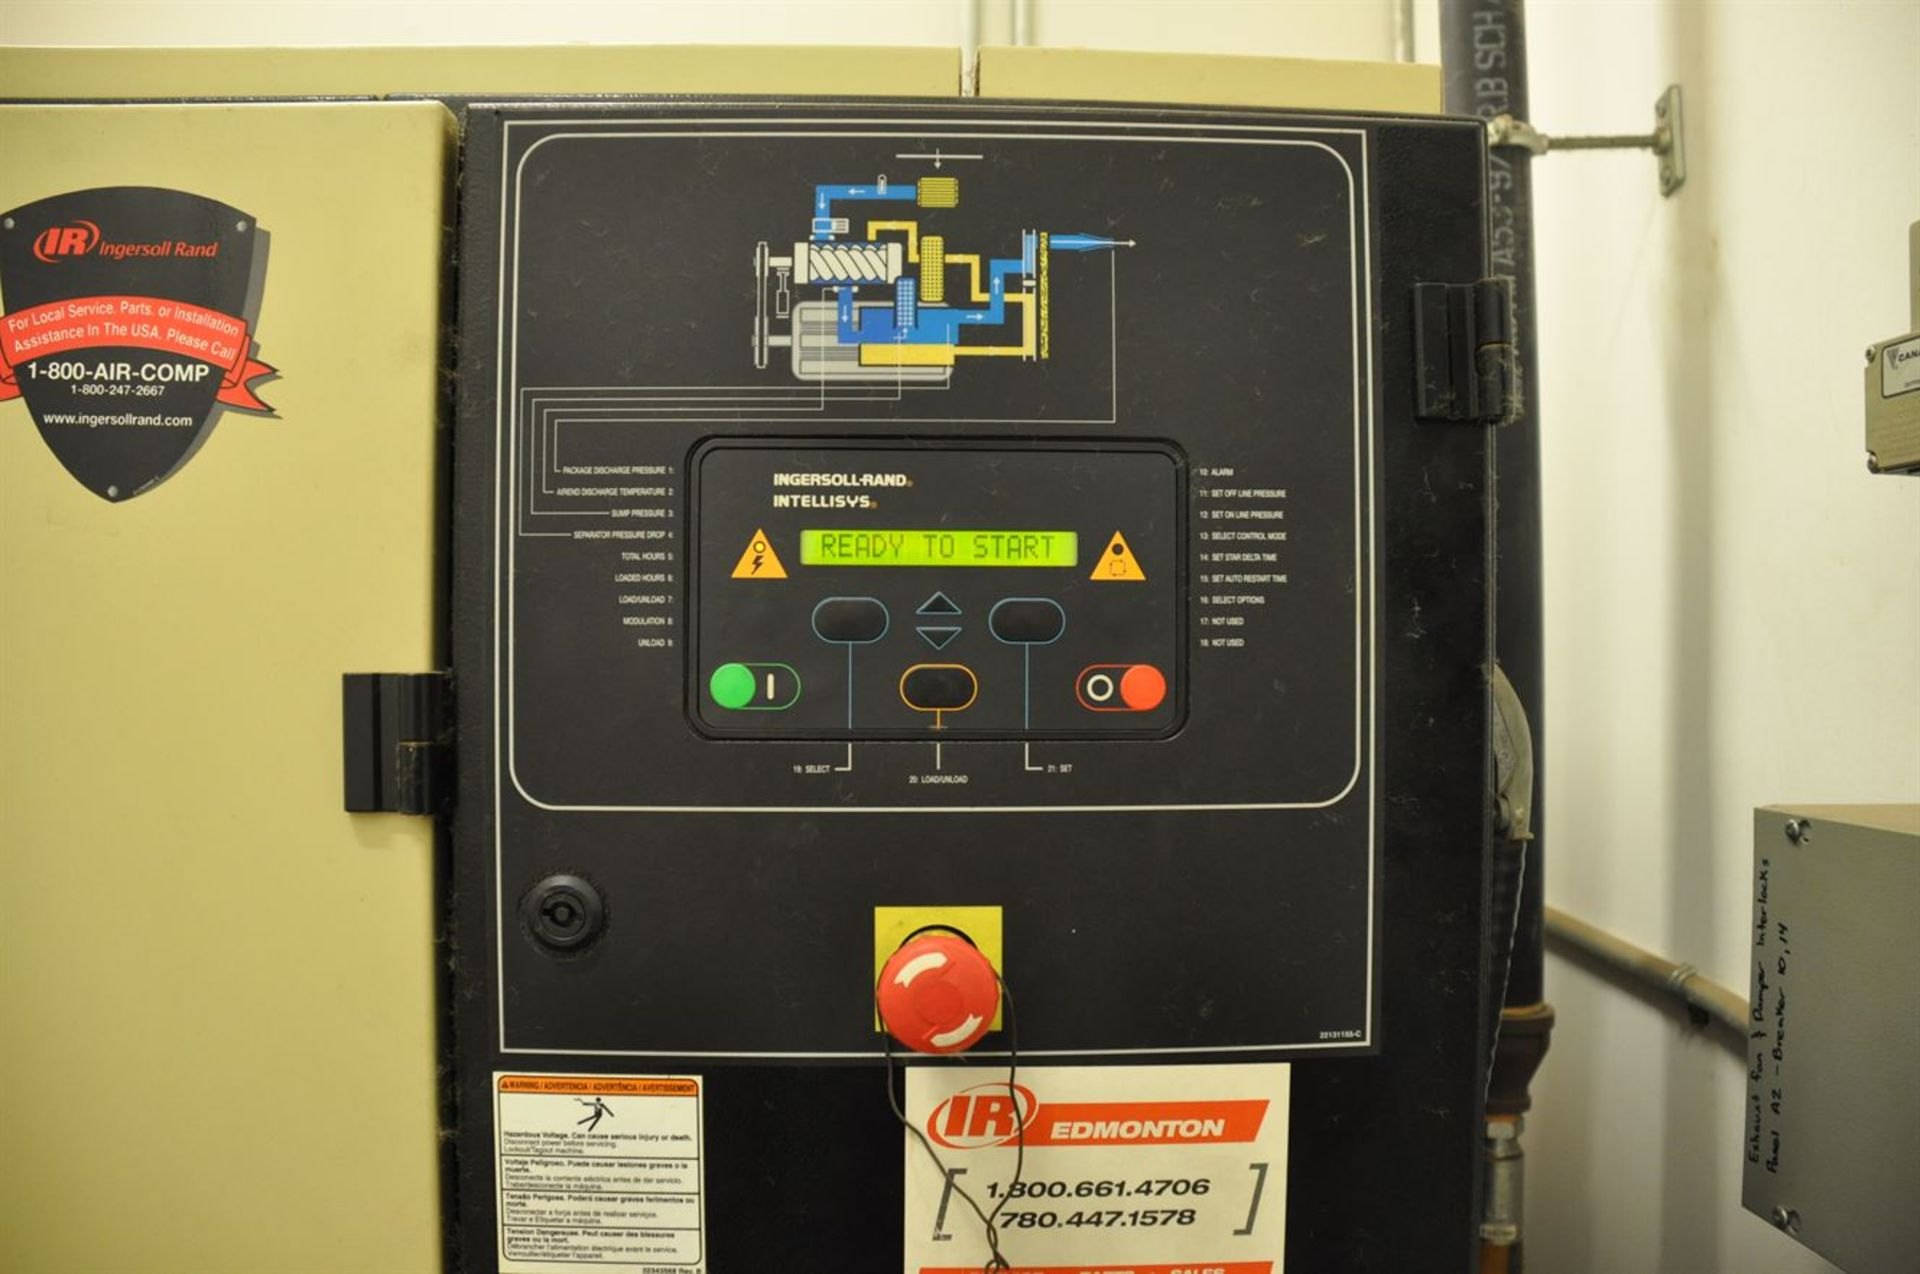 2012 INGERSOLL RAND UP6-30-150 30 hp Air Compressor System, s/n CBV185765, w/ Built-In Air Dryer, - Image 2 of 2